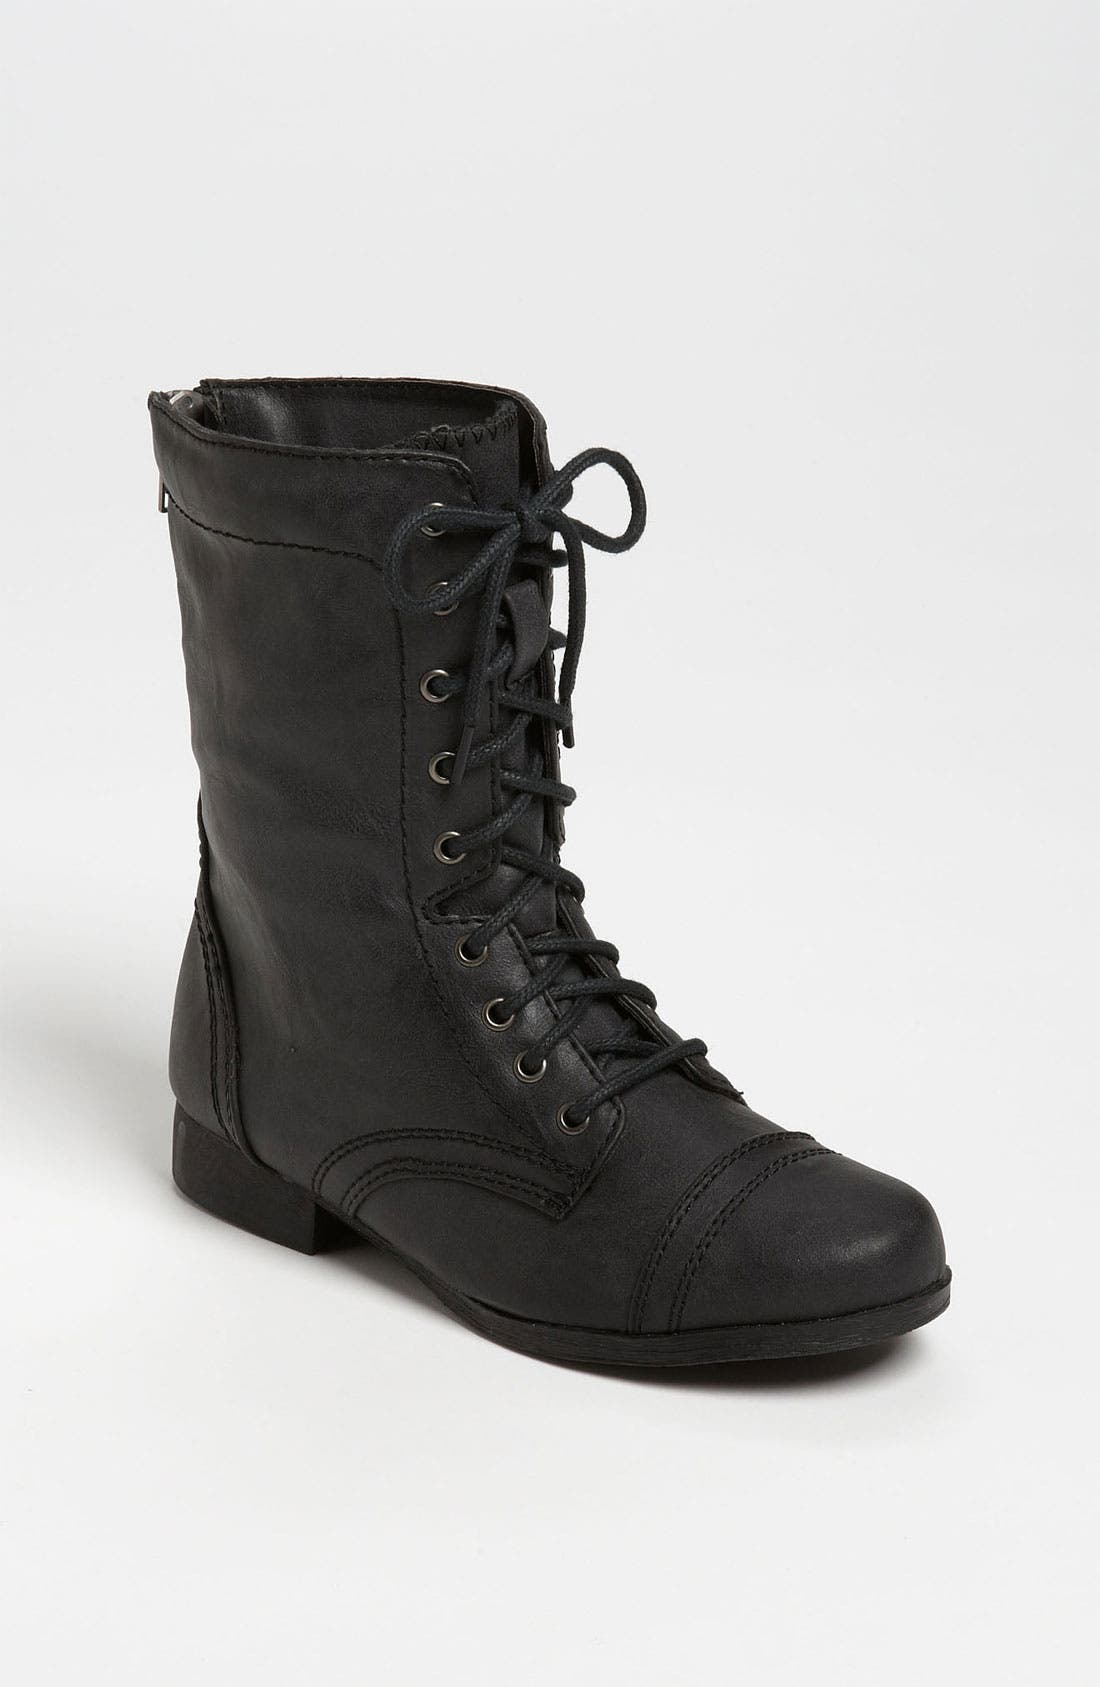 Alternate Image 1 Selected - Steve Madden 'Cablee' Boot (Toddler, Little Kid & Big Kid)